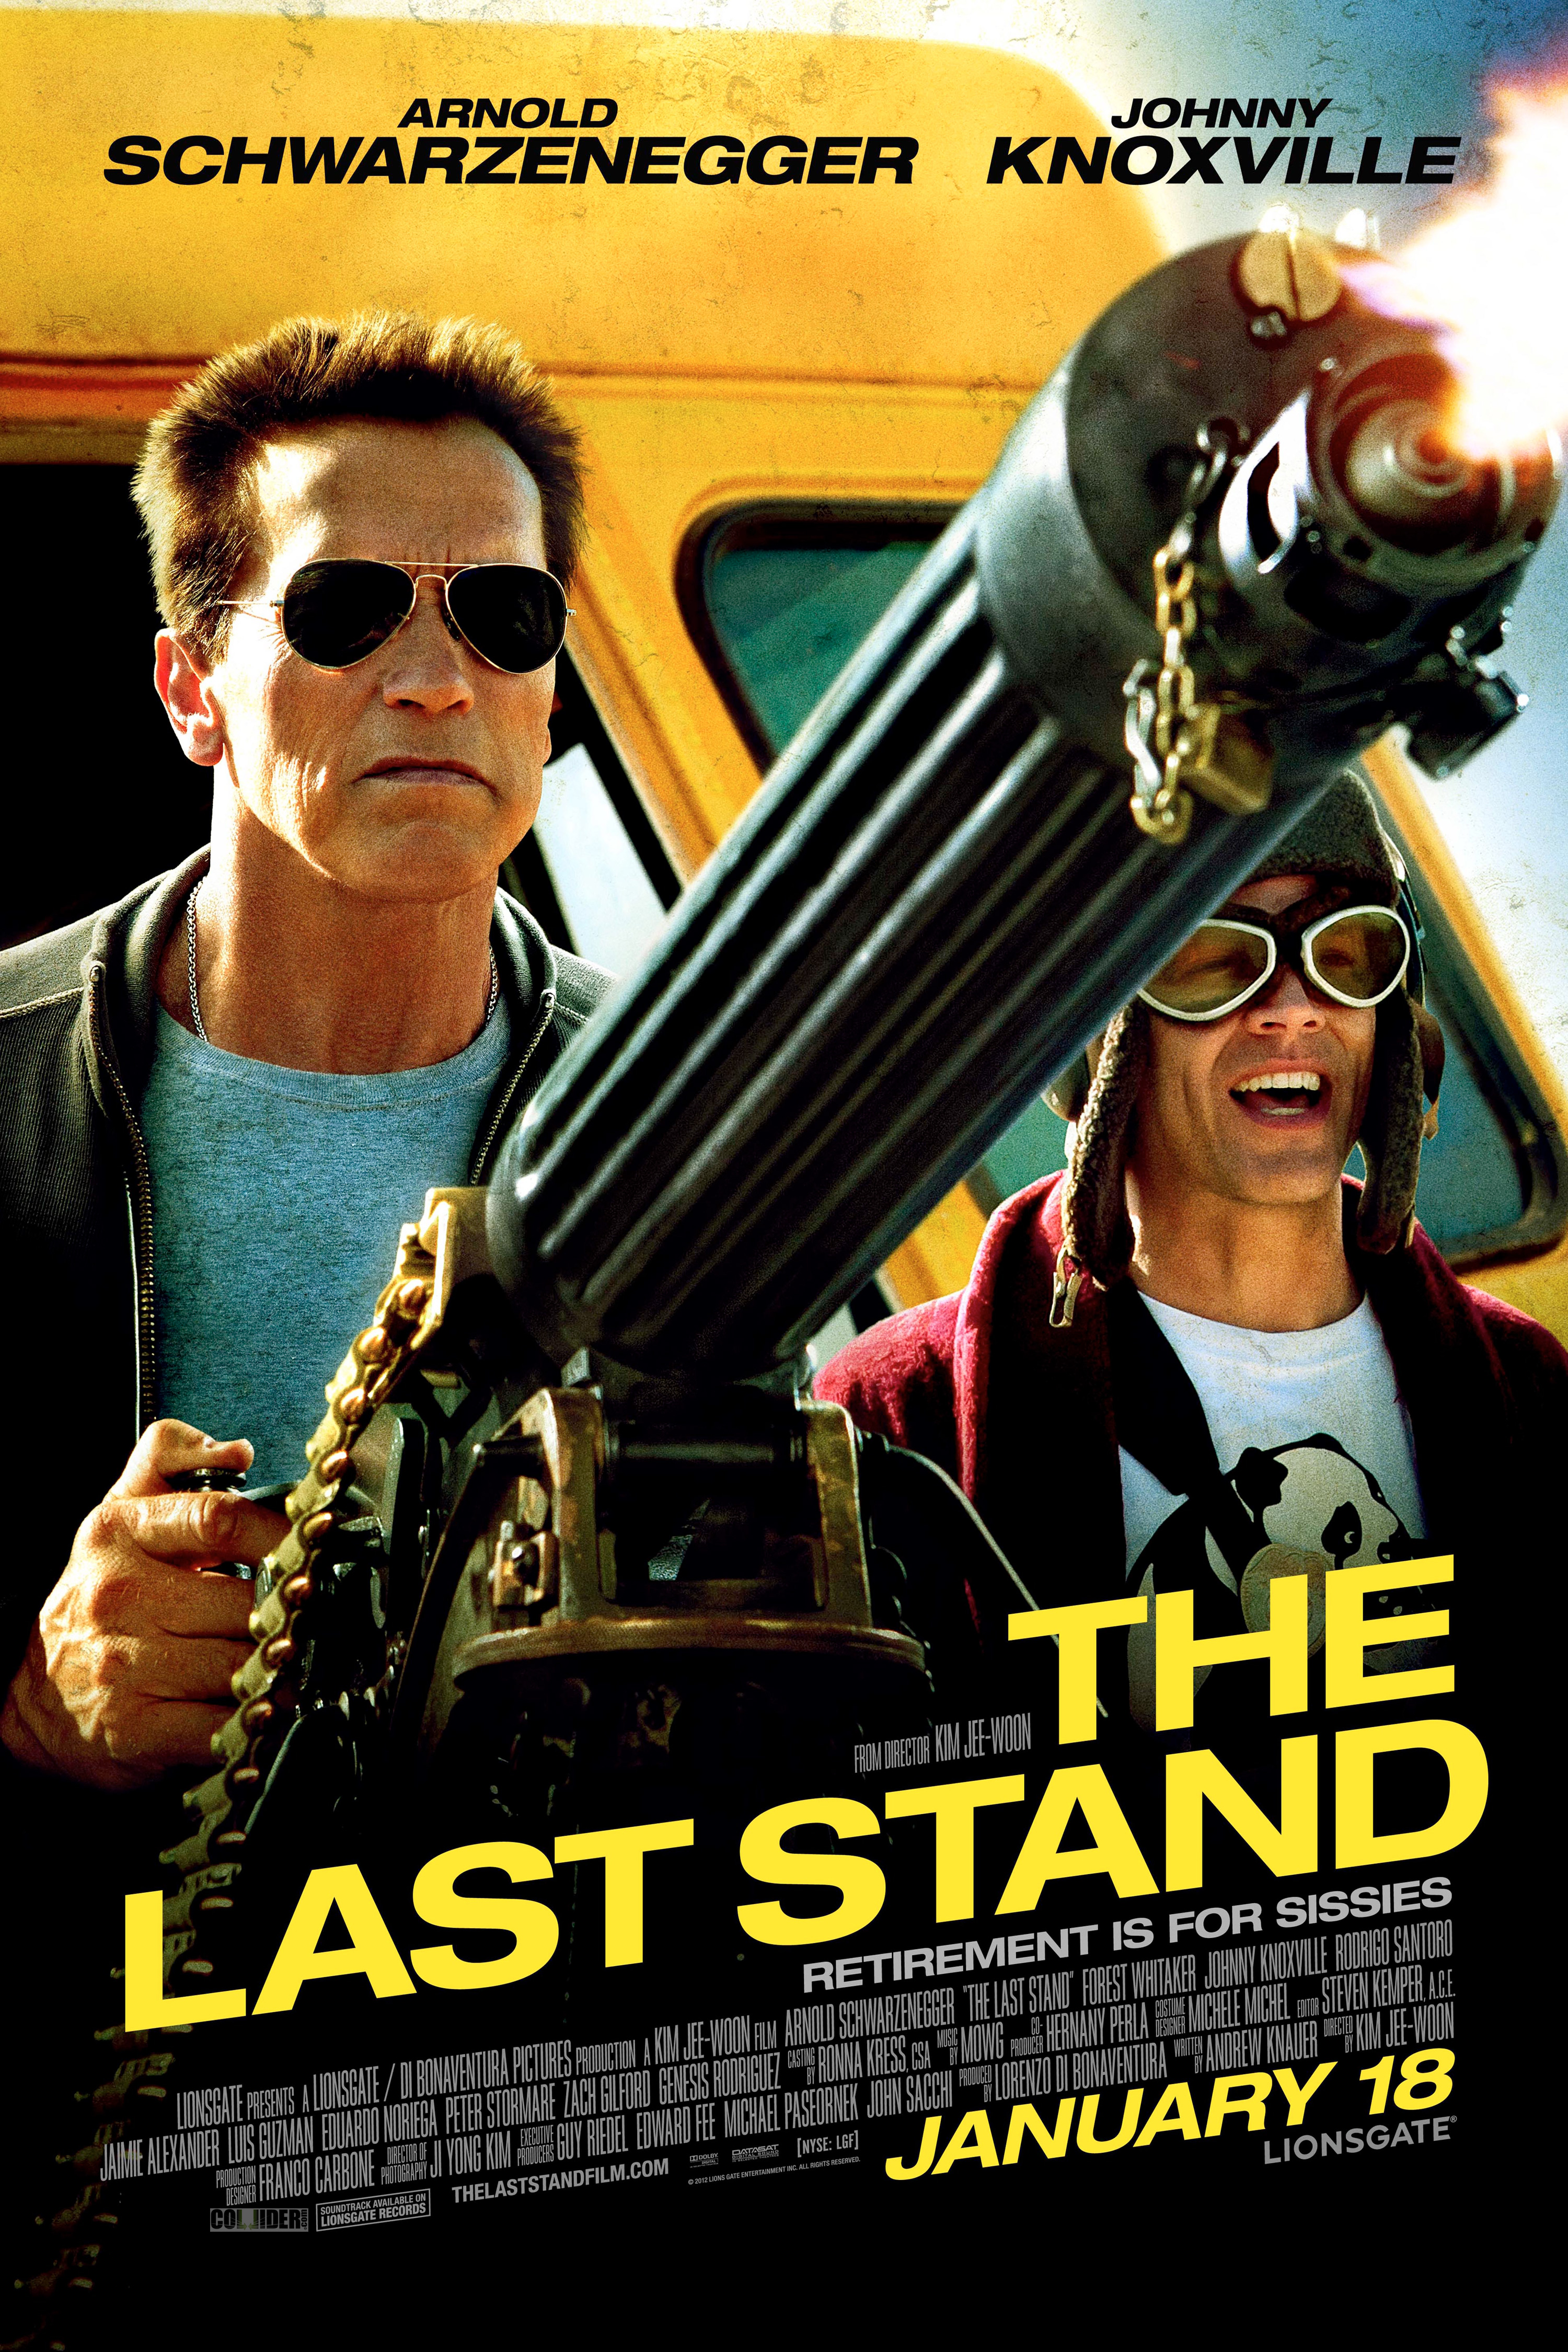 The Last Stand Final New Red Band Trailer For The Last Stand